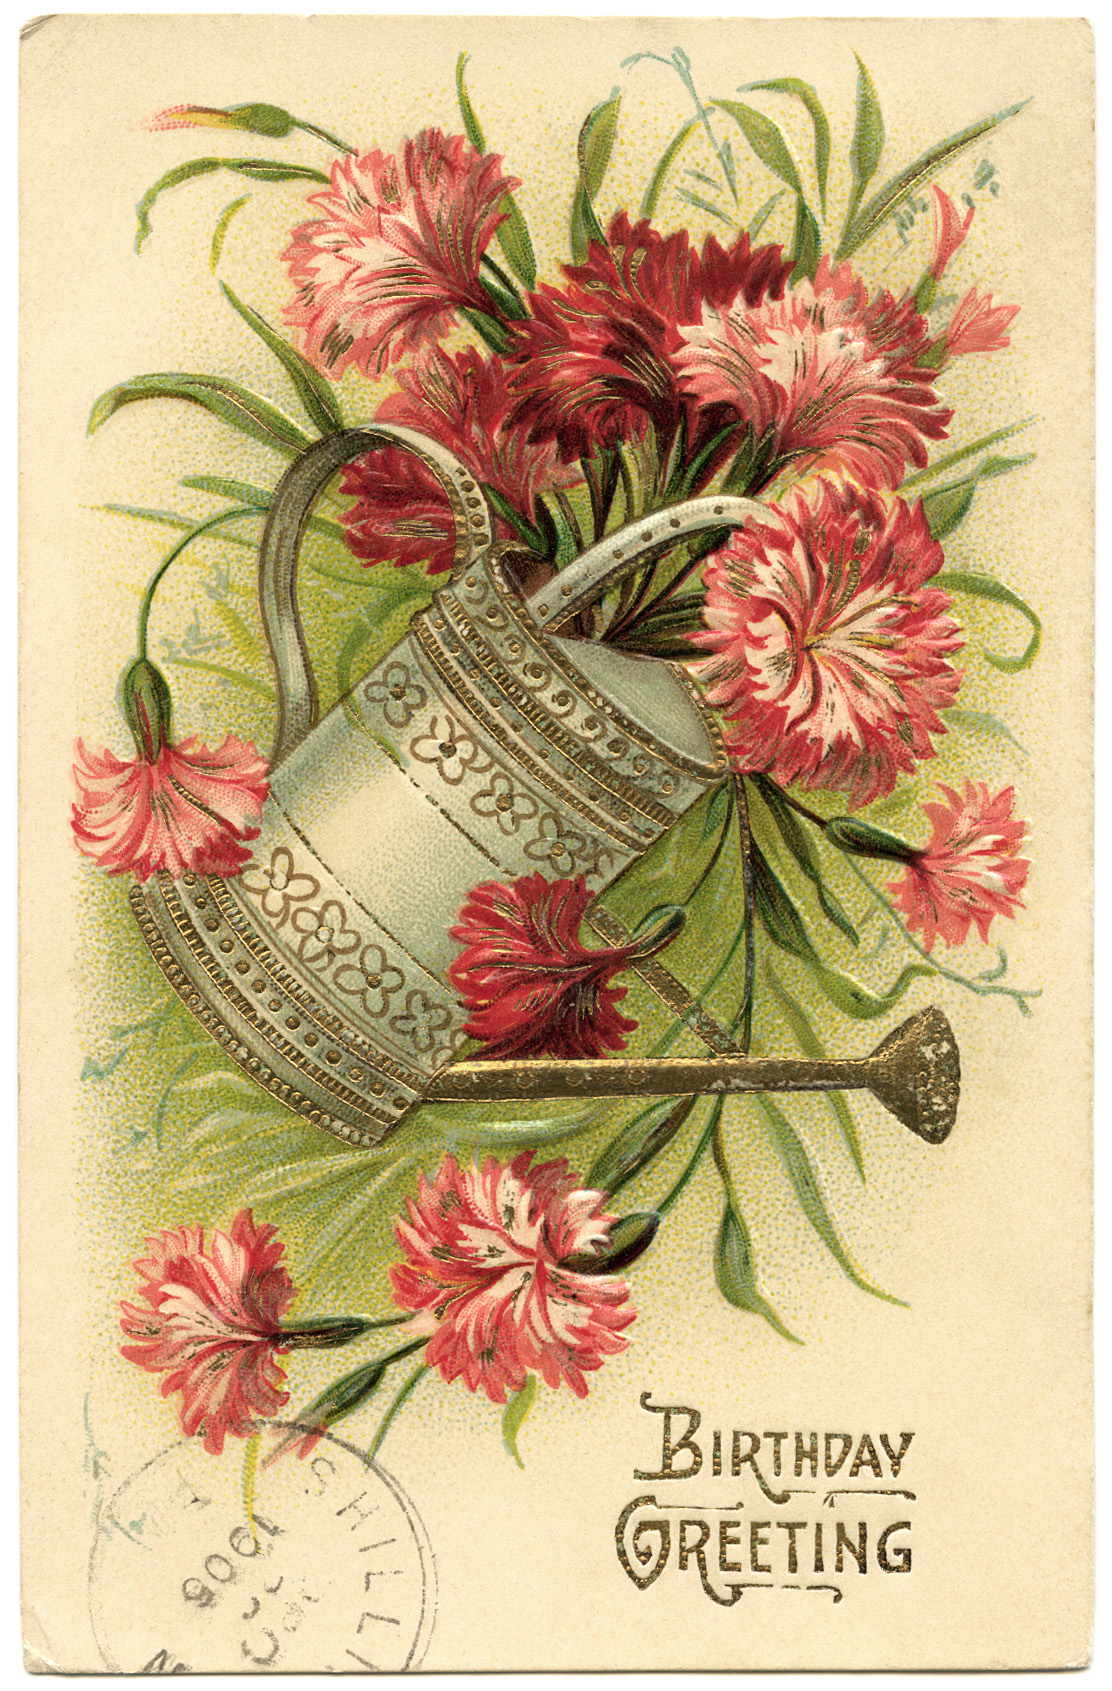 Pail of Flowers Vintage Birthday Card   Old Design Shop Blog Free vintage clip art watering can filled with flowers birthday postcard  image